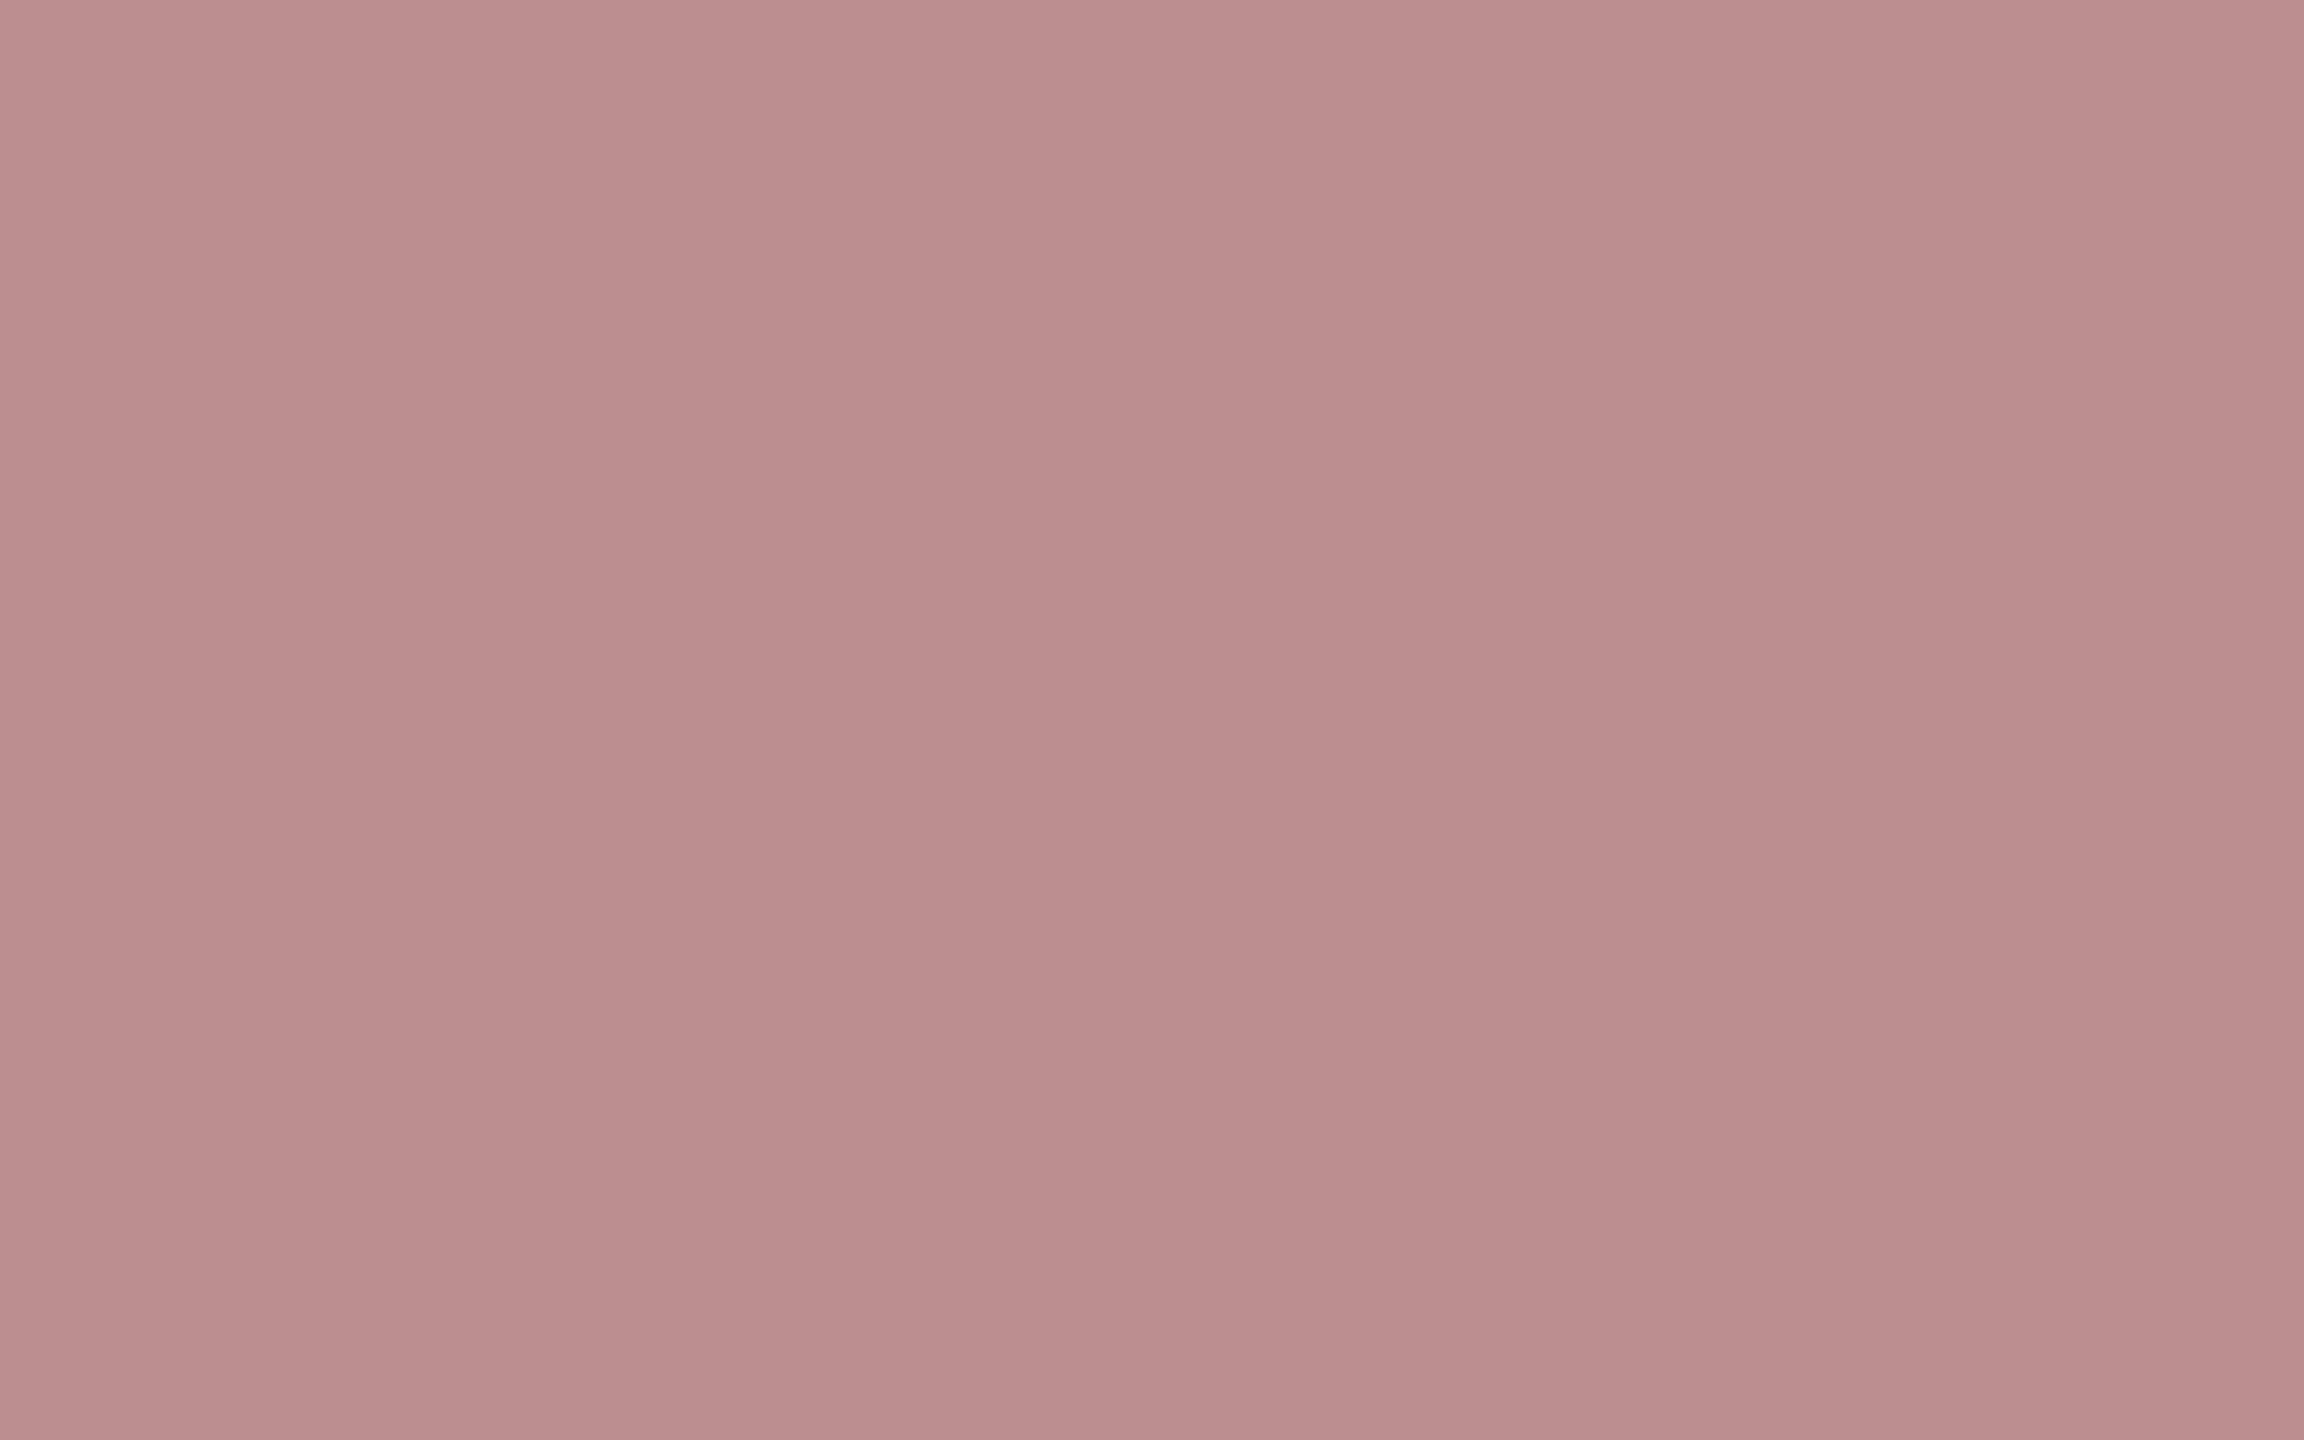 2304x1440 Rosy Brown Solid Color Background